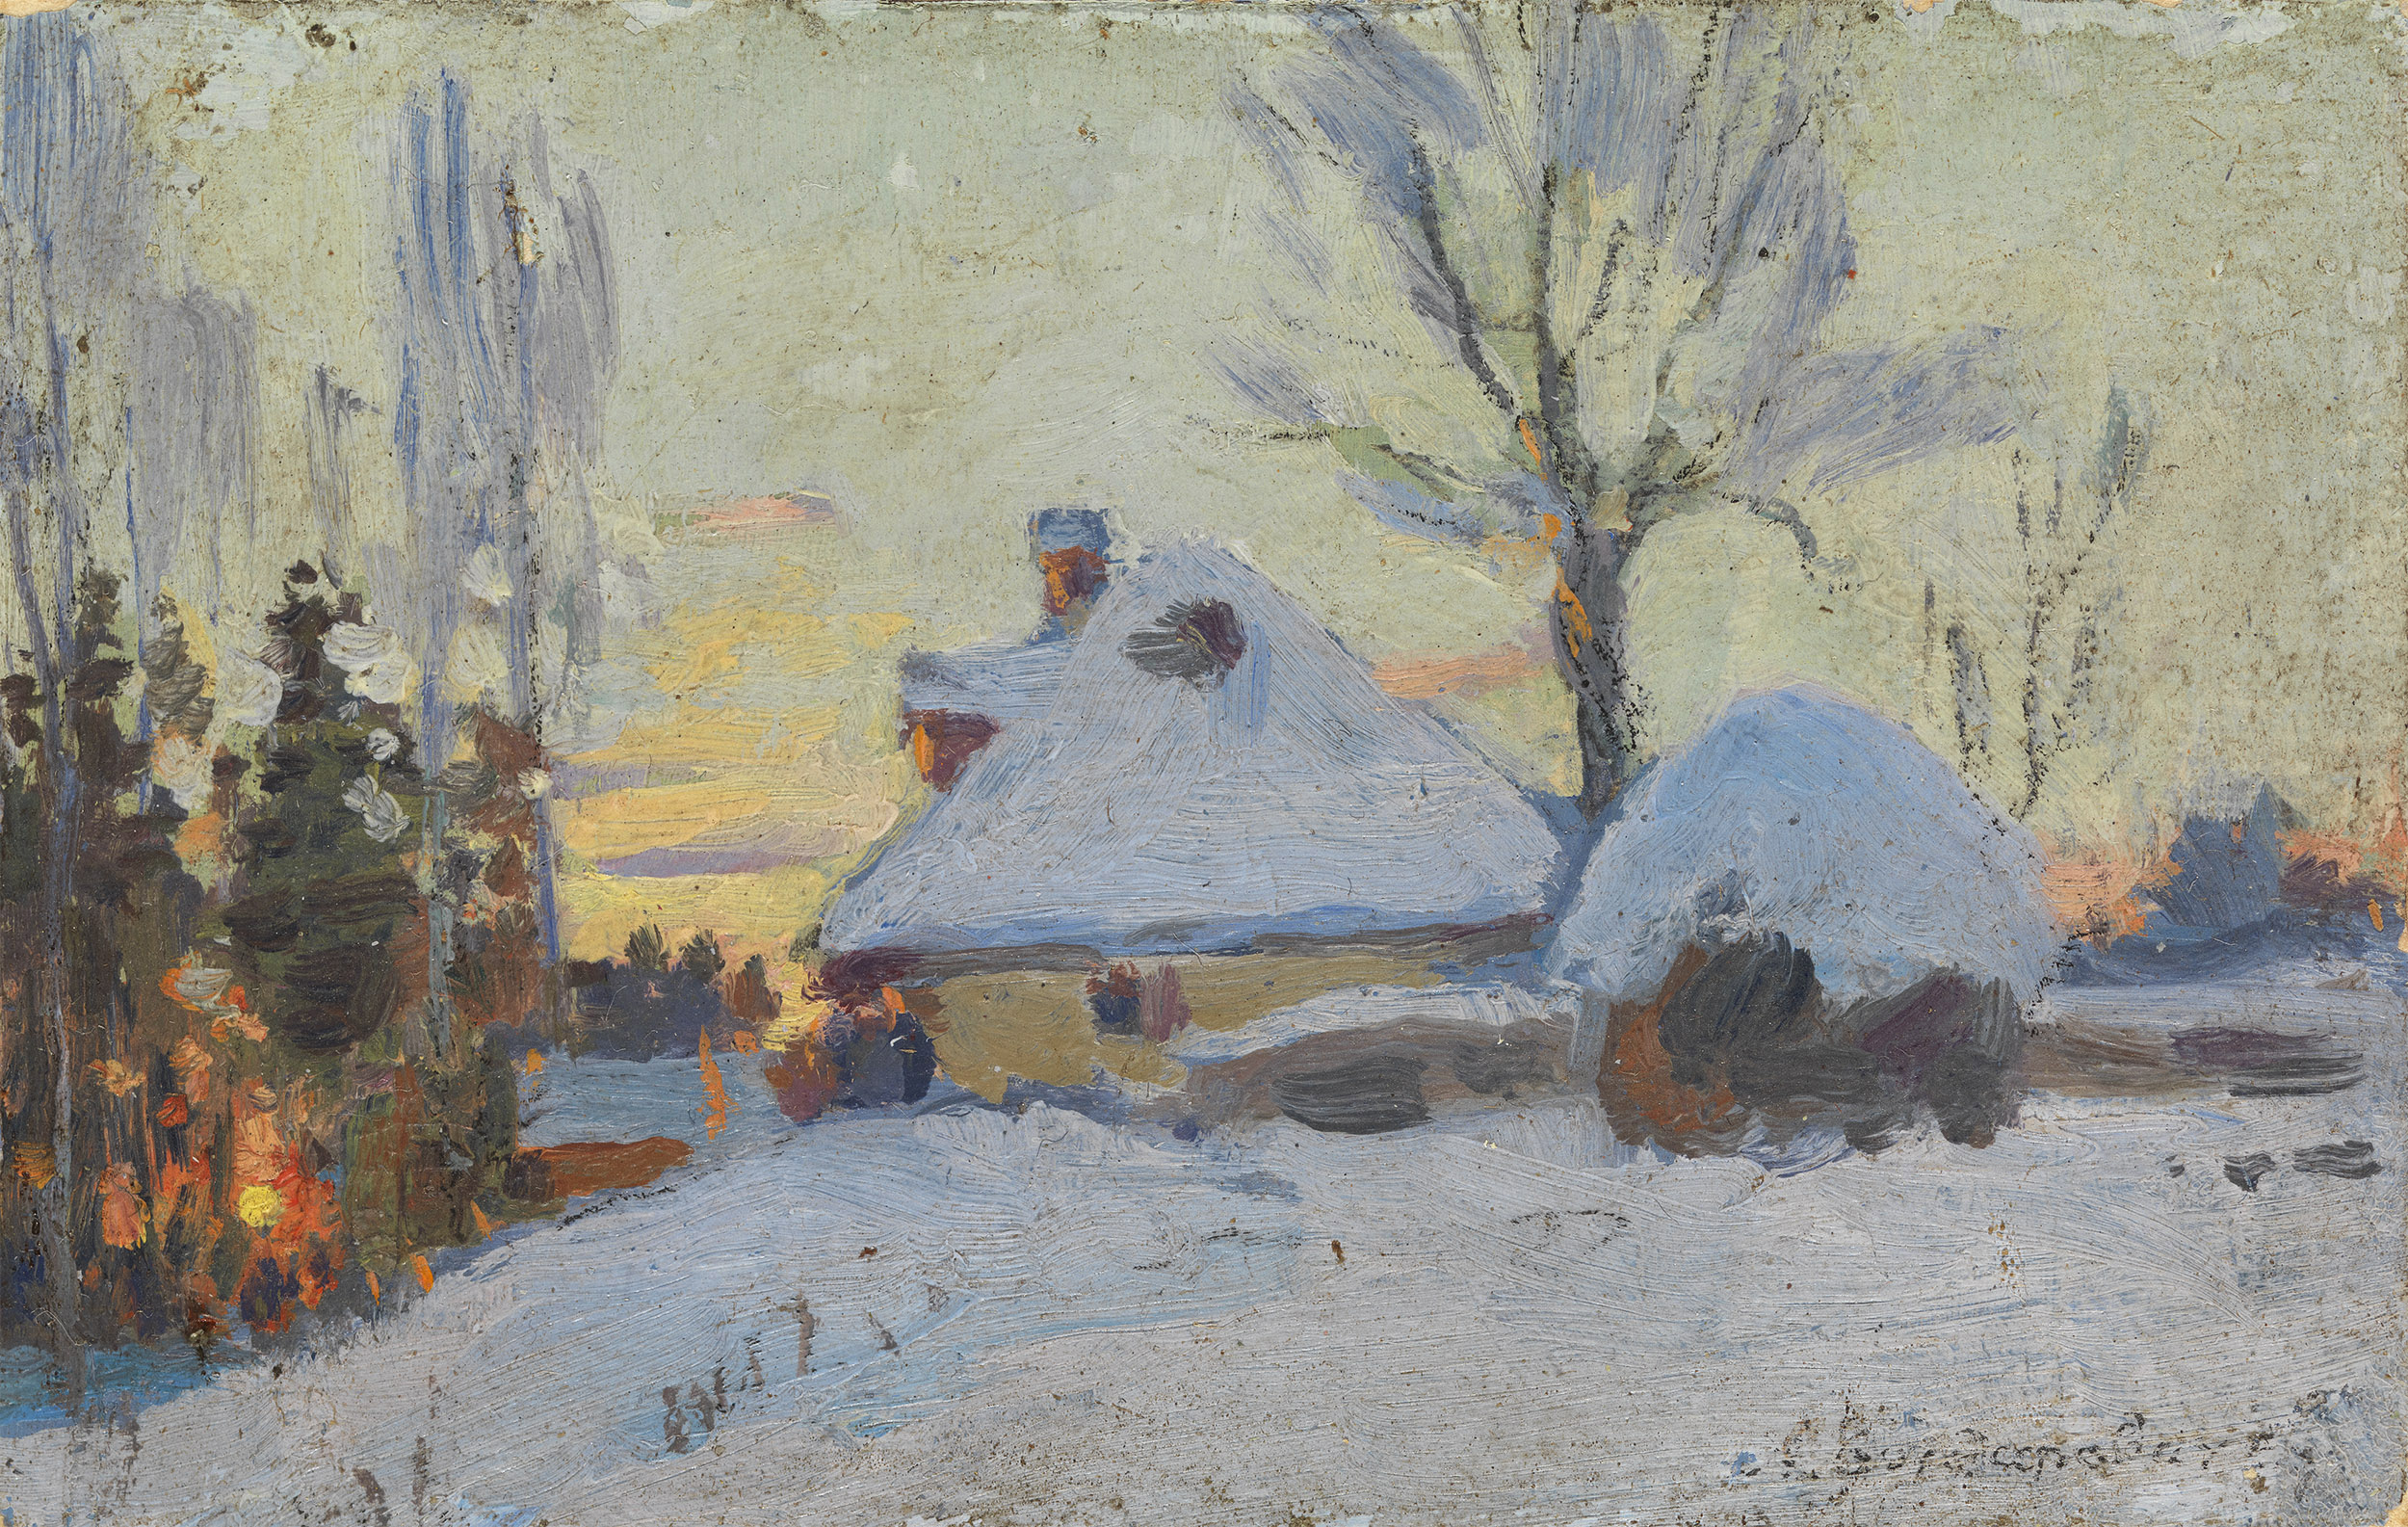 VASILKOVSKY, SERGEI Winter Village at Sunset